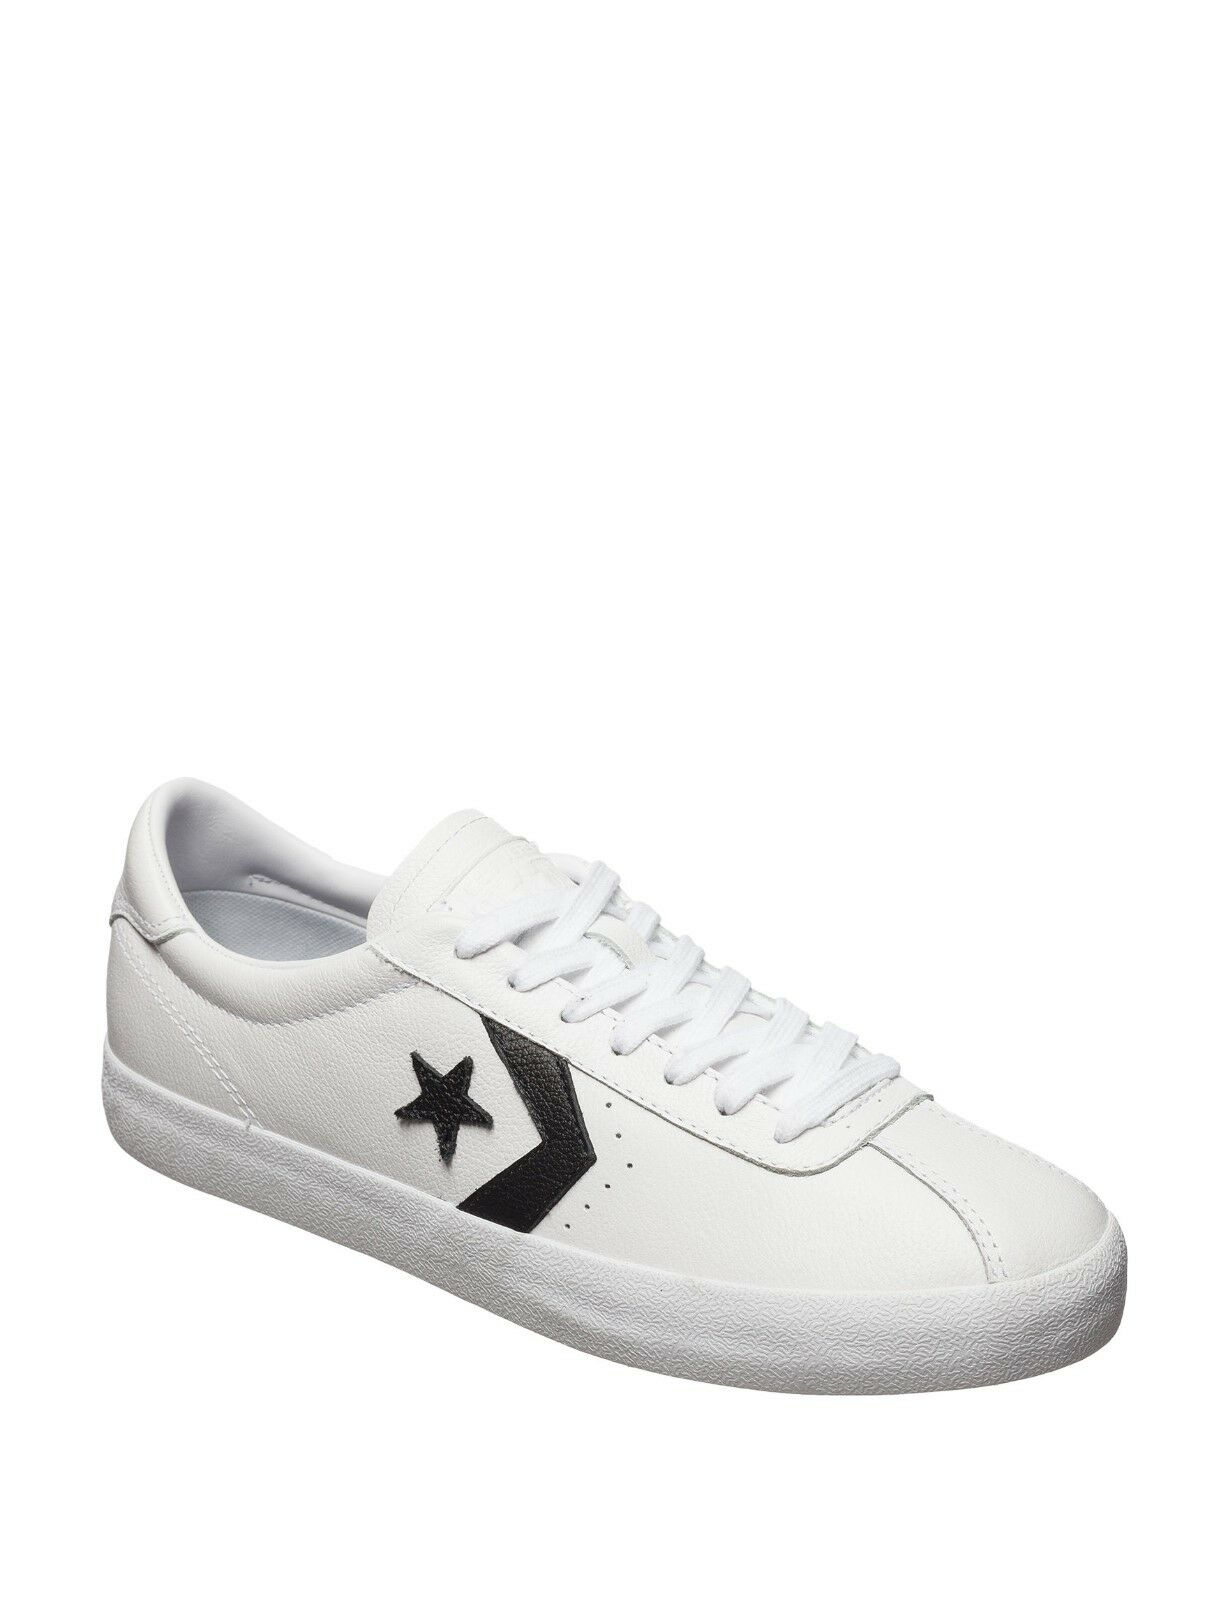 Converse Breakpoint Shoes Size Men's 12 Shipping New In Box Free Shipping 12 7465a3